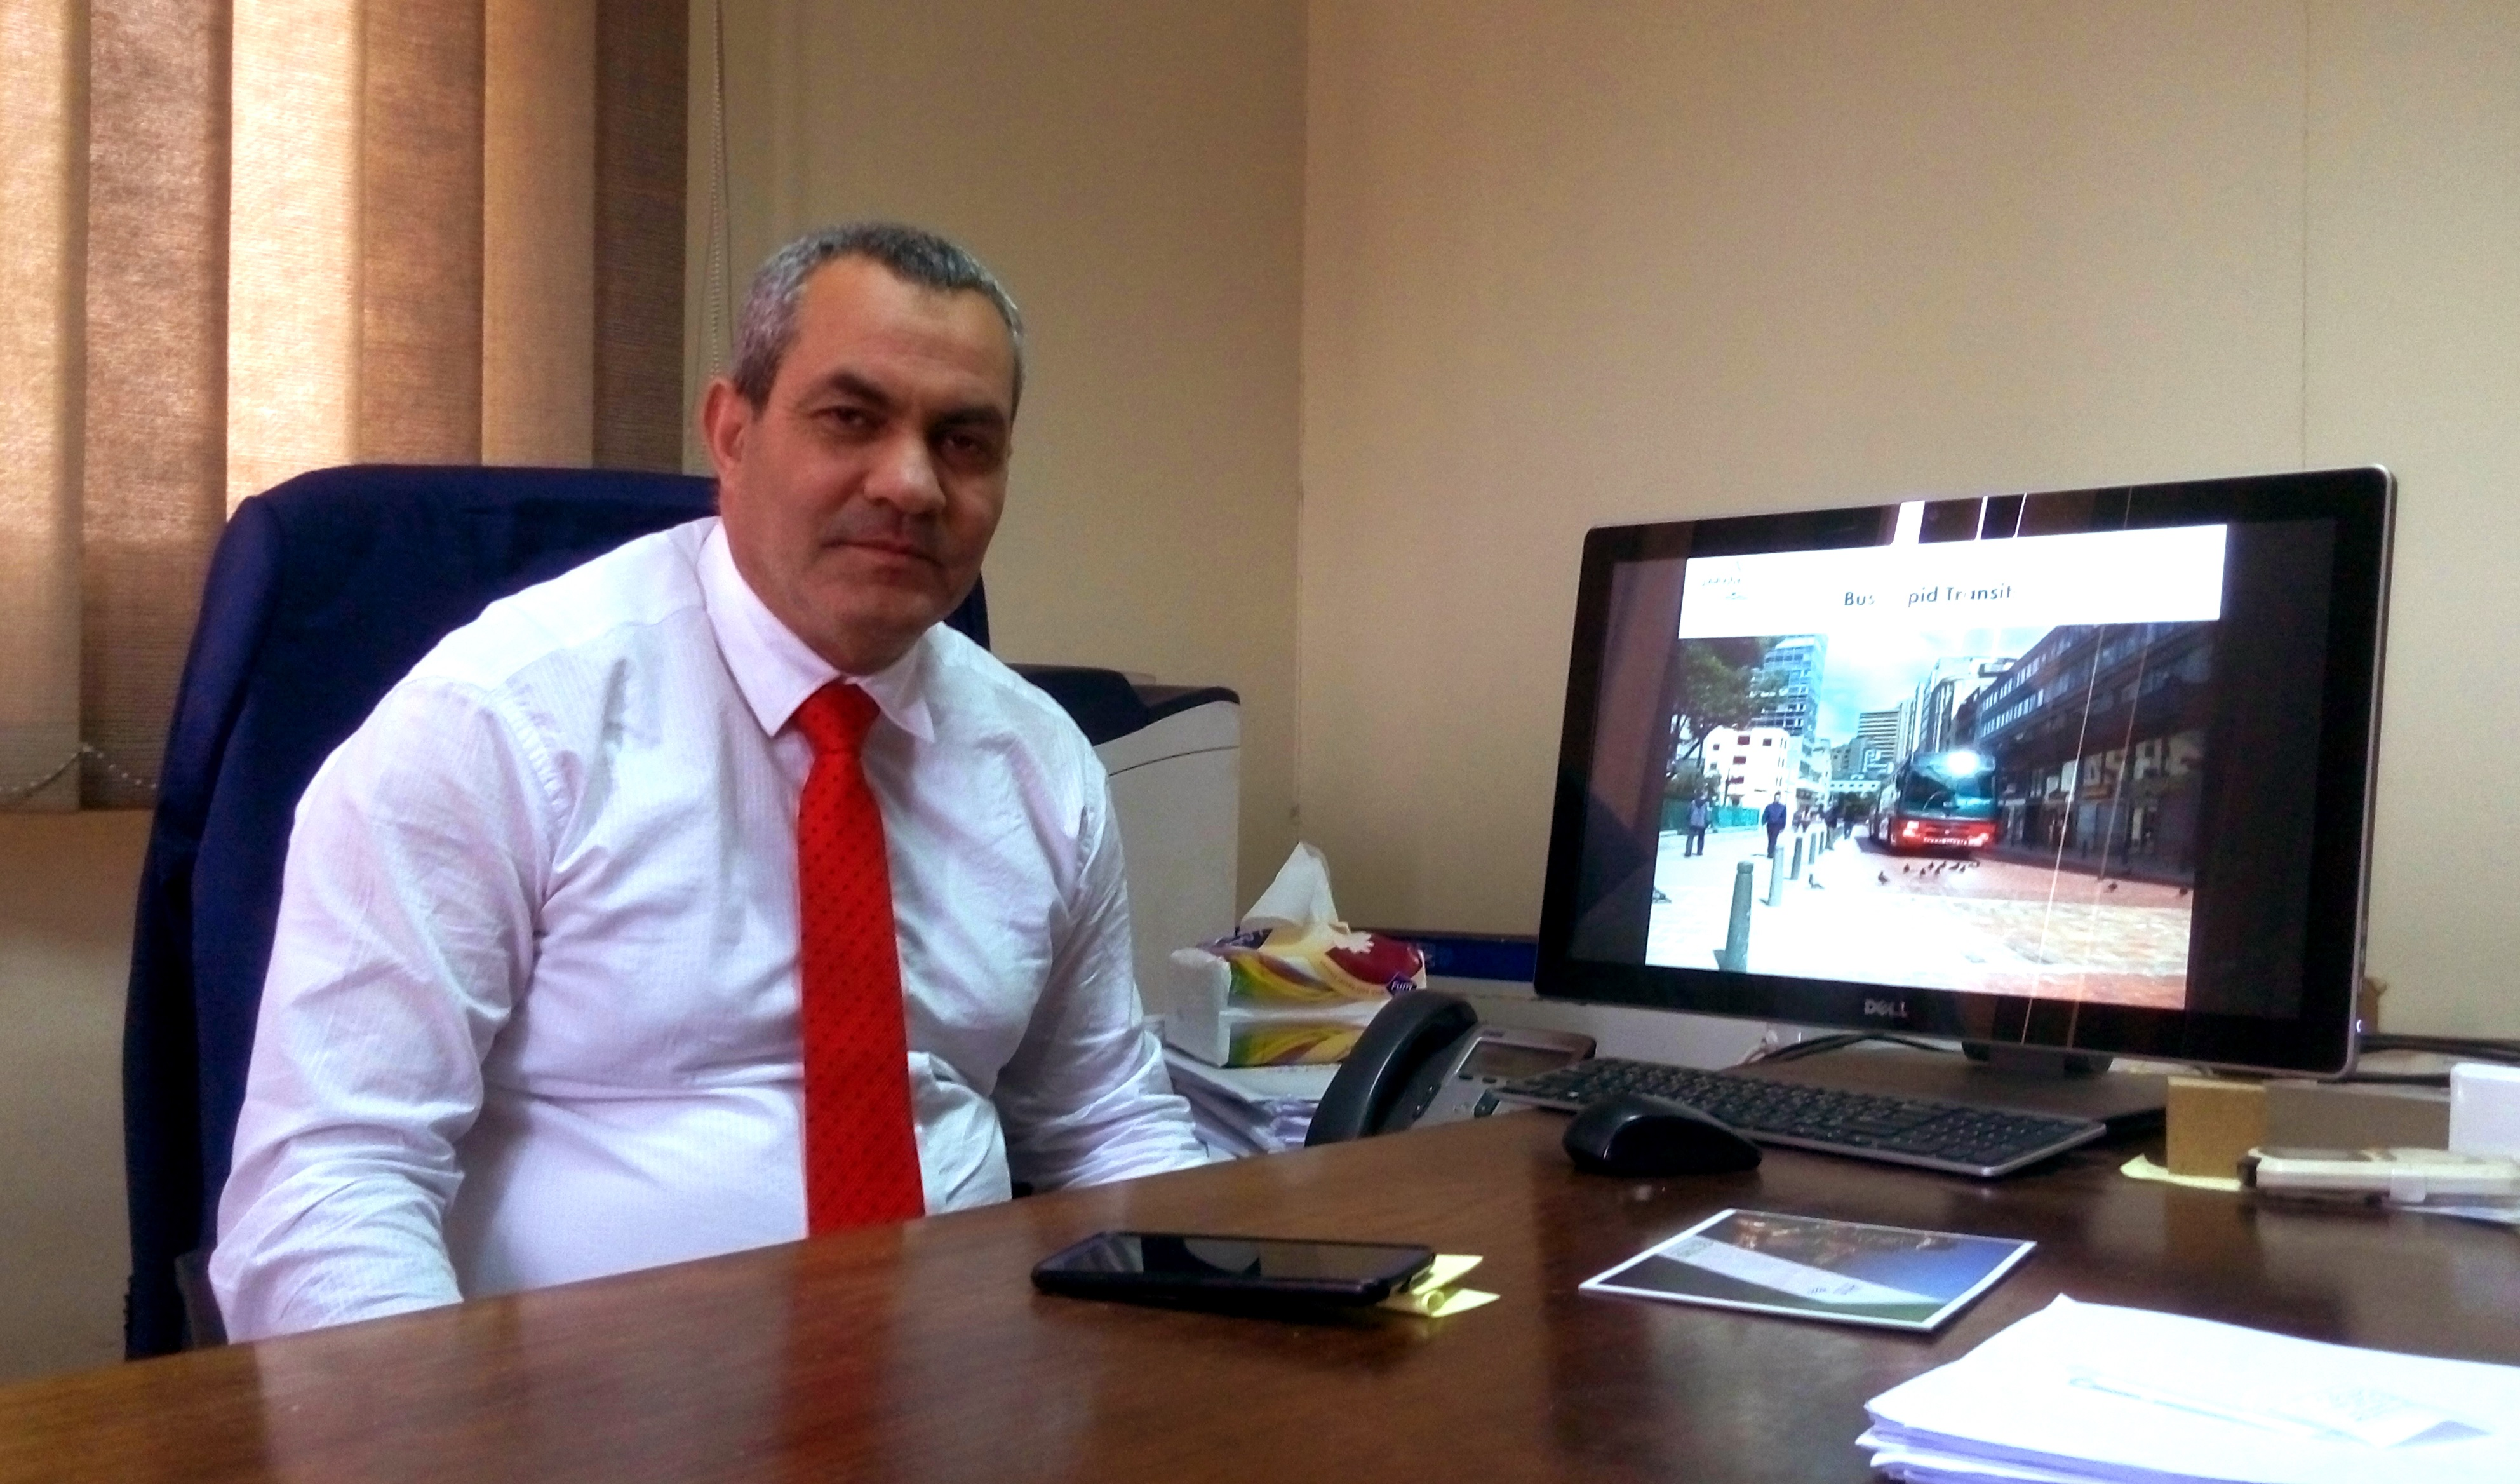 Greater Cairo fare policy in turmoil – Meeting with Eng. Sayed Metwalli, CEO of GCTRA